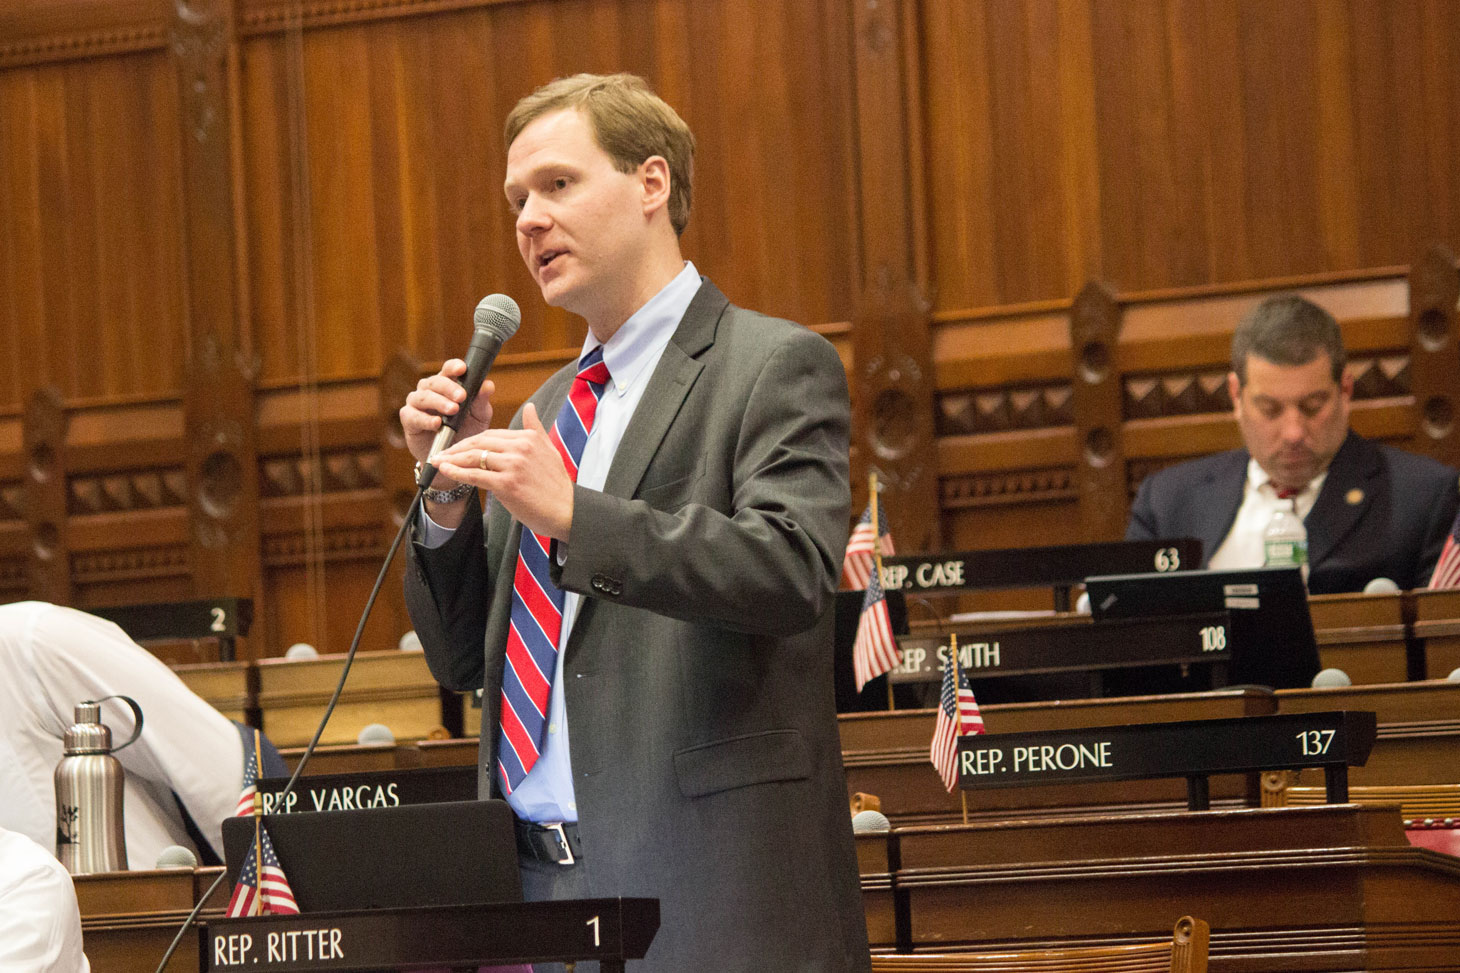 Rep. Ritter introduces opioid legislation